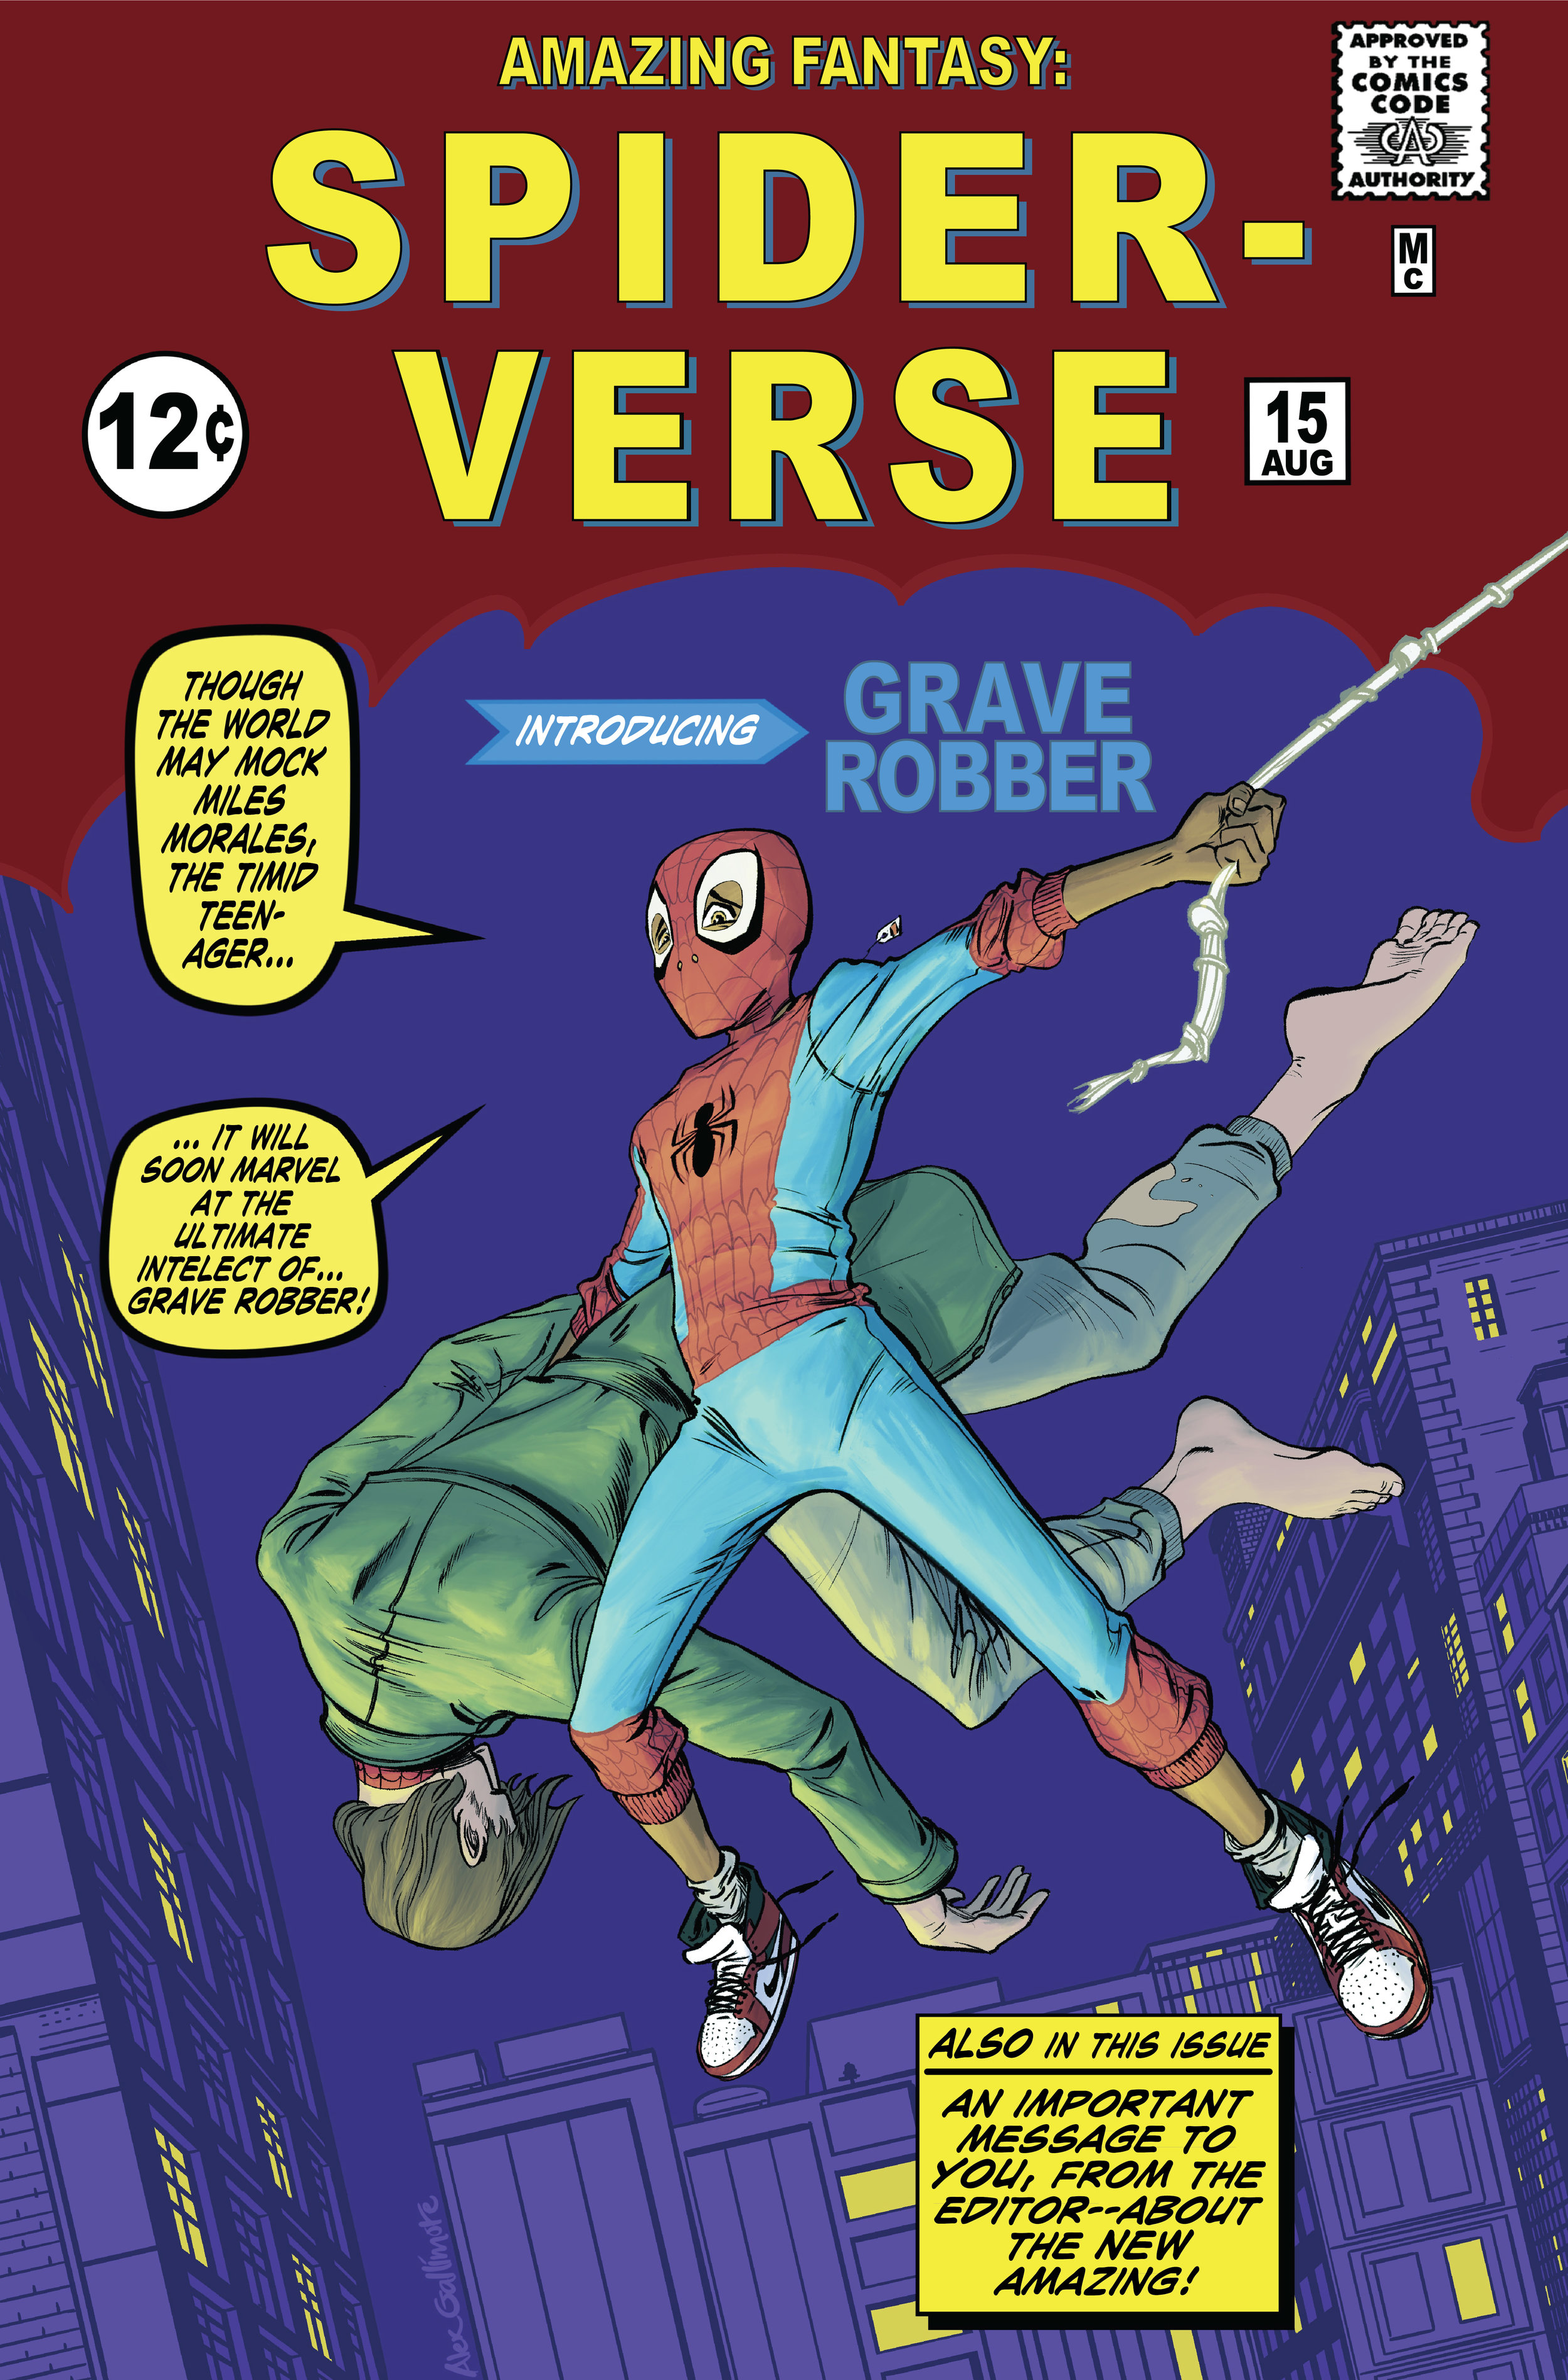 Spider-Verse Homage Cover colors